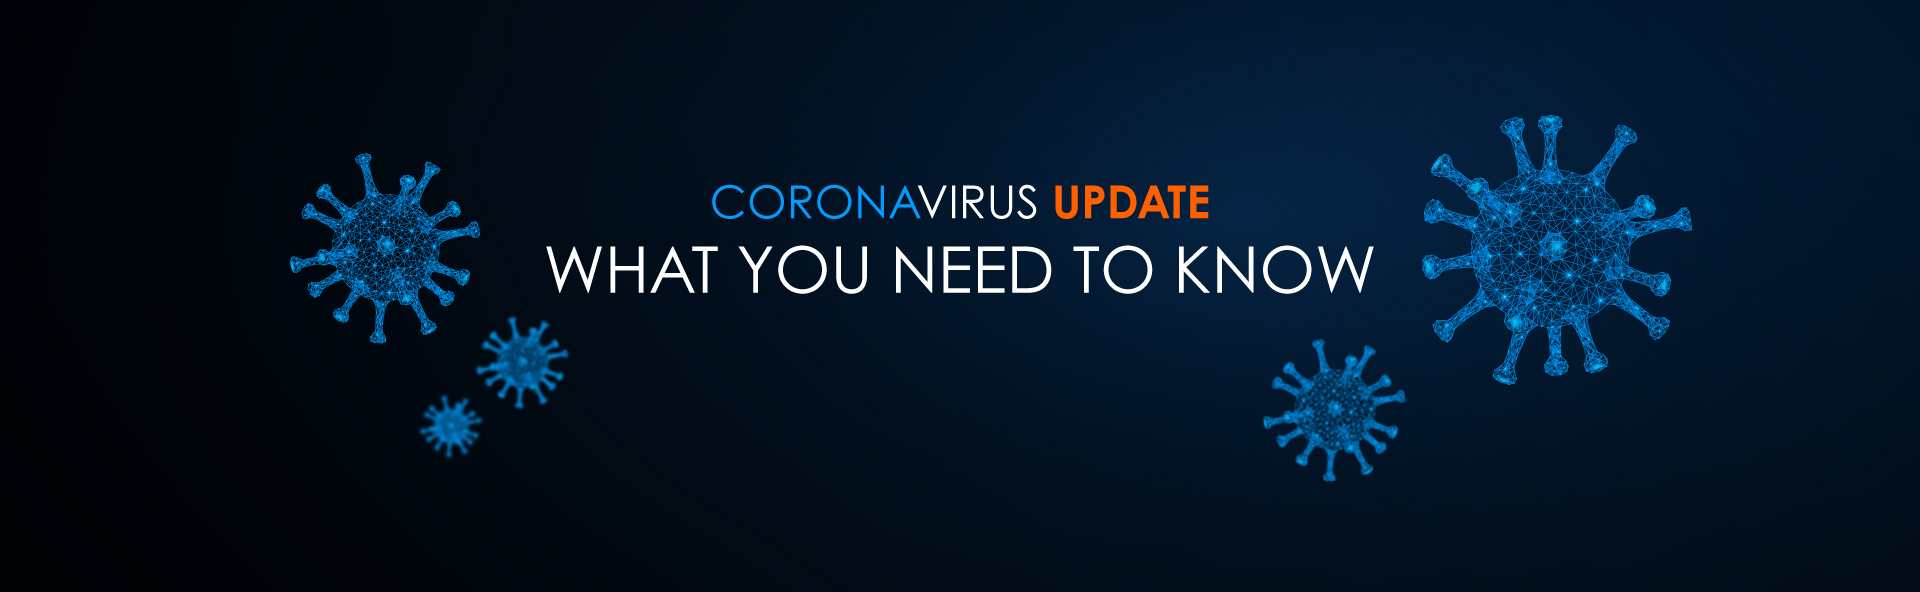 coronavirus up-to-date information